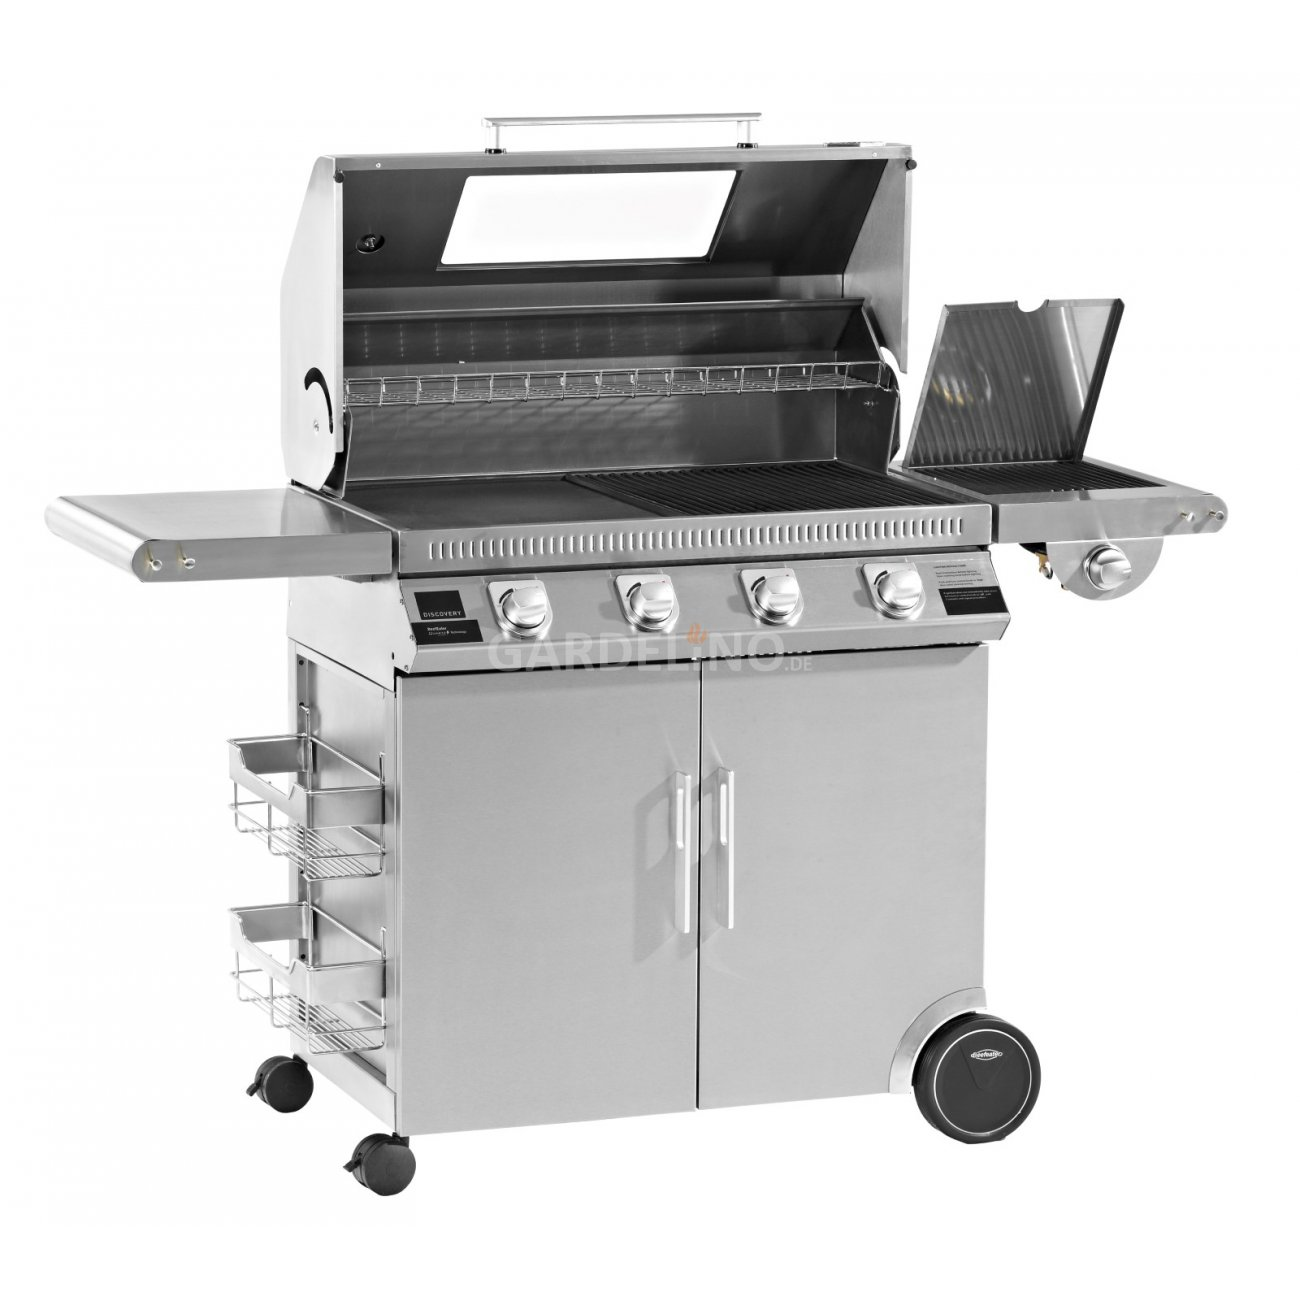 Beefeater bbq gasgrill trolley discovery 1100 s - Plancha trolley gas met deksel ...